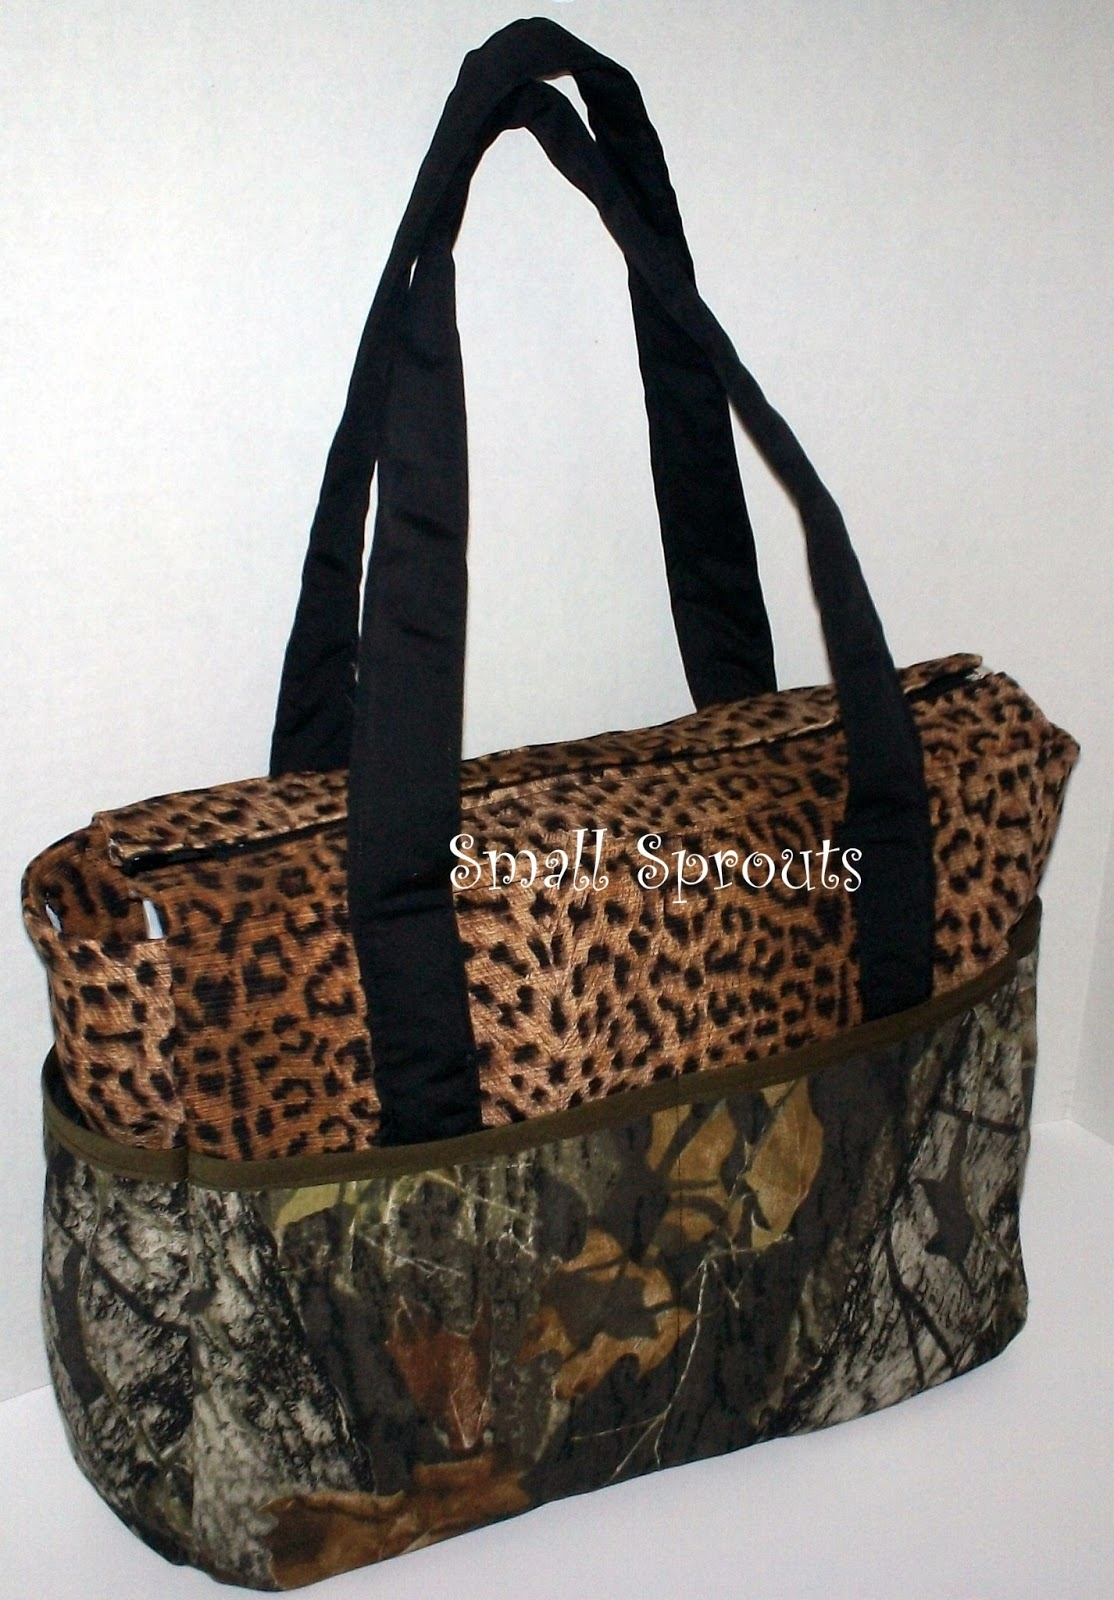 Small Sprouts: Small Sprouts Cool Camo Cheetah Fancy Diaper Bag